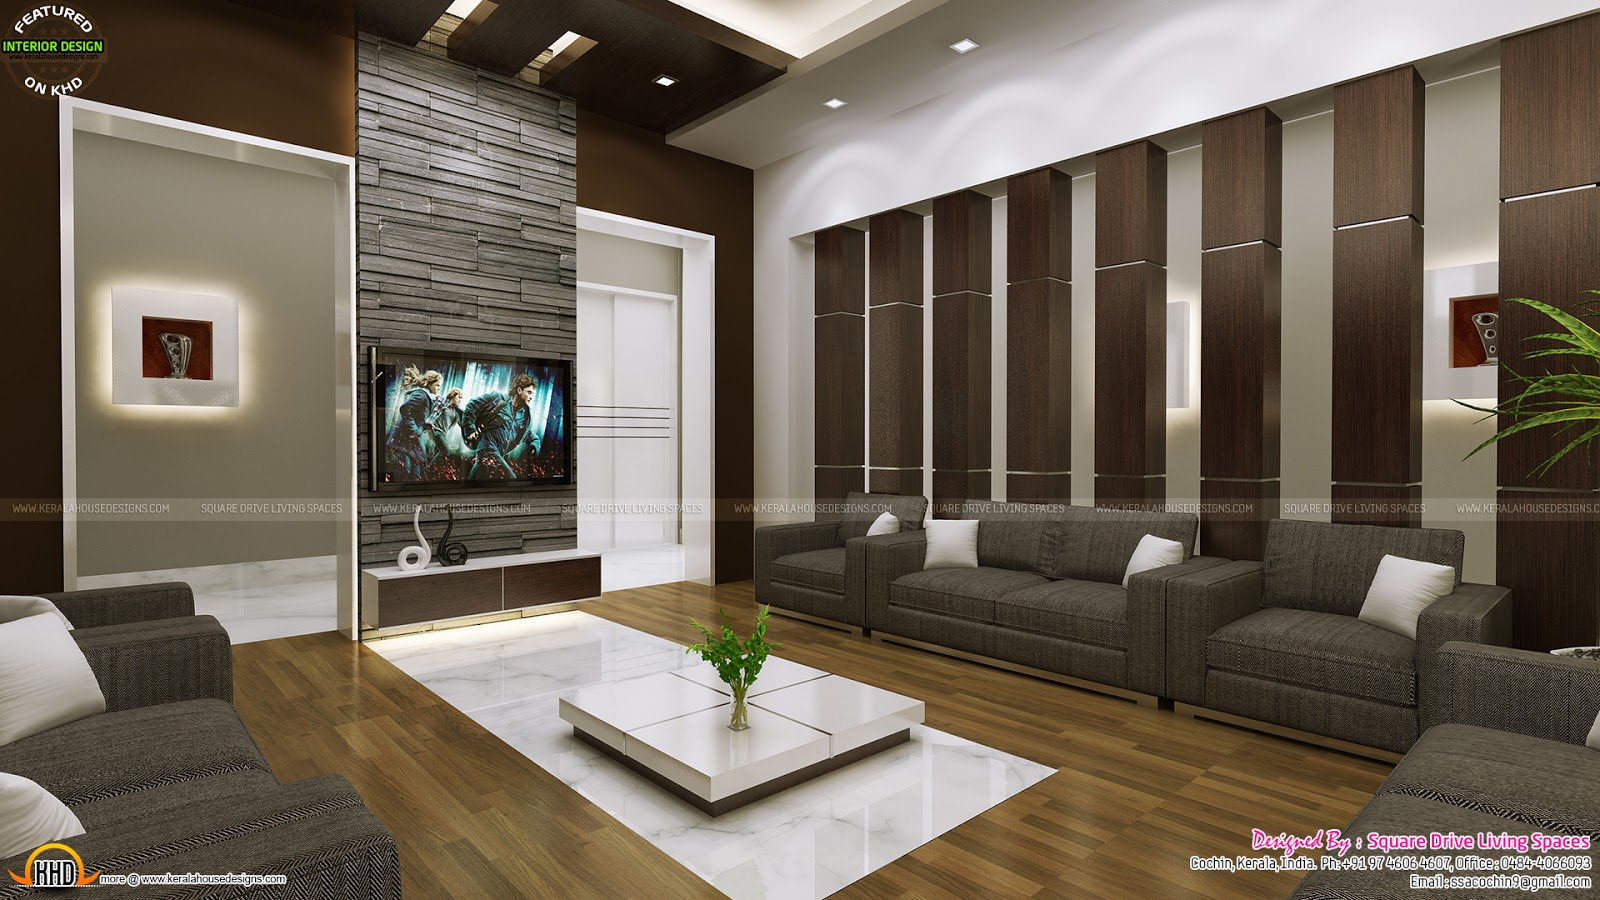 Attractive home interior ideas kerala home design and - Home interior designs ...